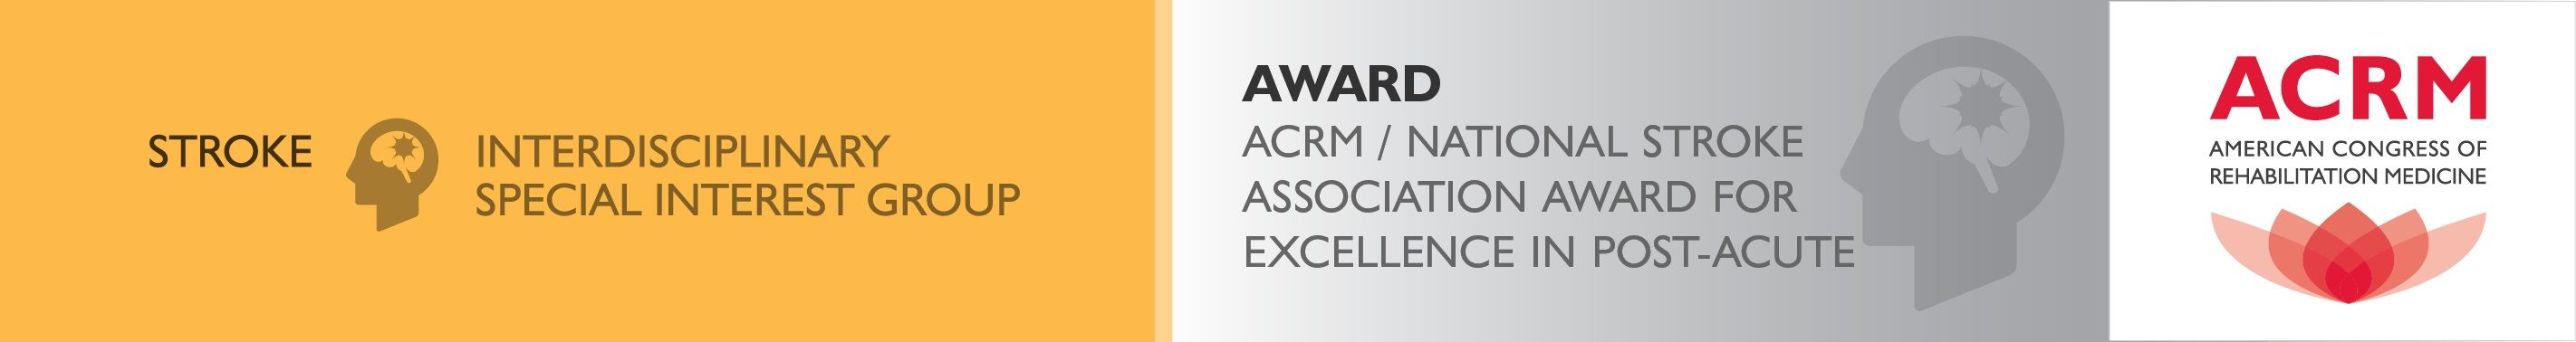 NSA-ACRM Excellence in Post-Acute Stroke Rehabilitation Award